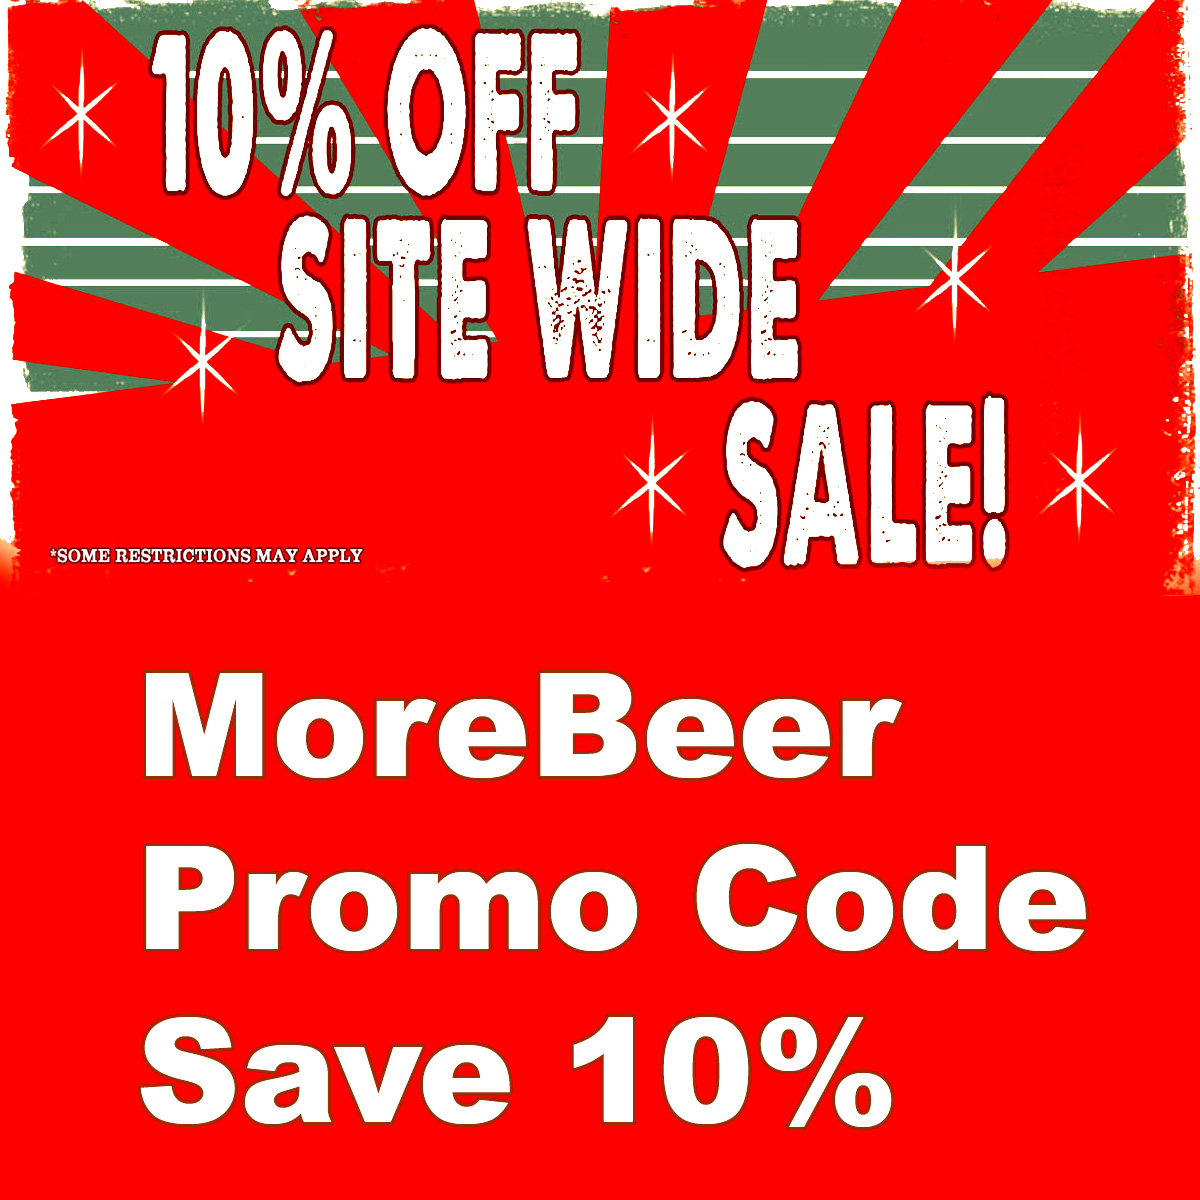 Home Wine Making Coupon Codes for Save An Additional 10% Site Wide At MoreBeer.com With Promo Code SAVEME10 Coupon Code